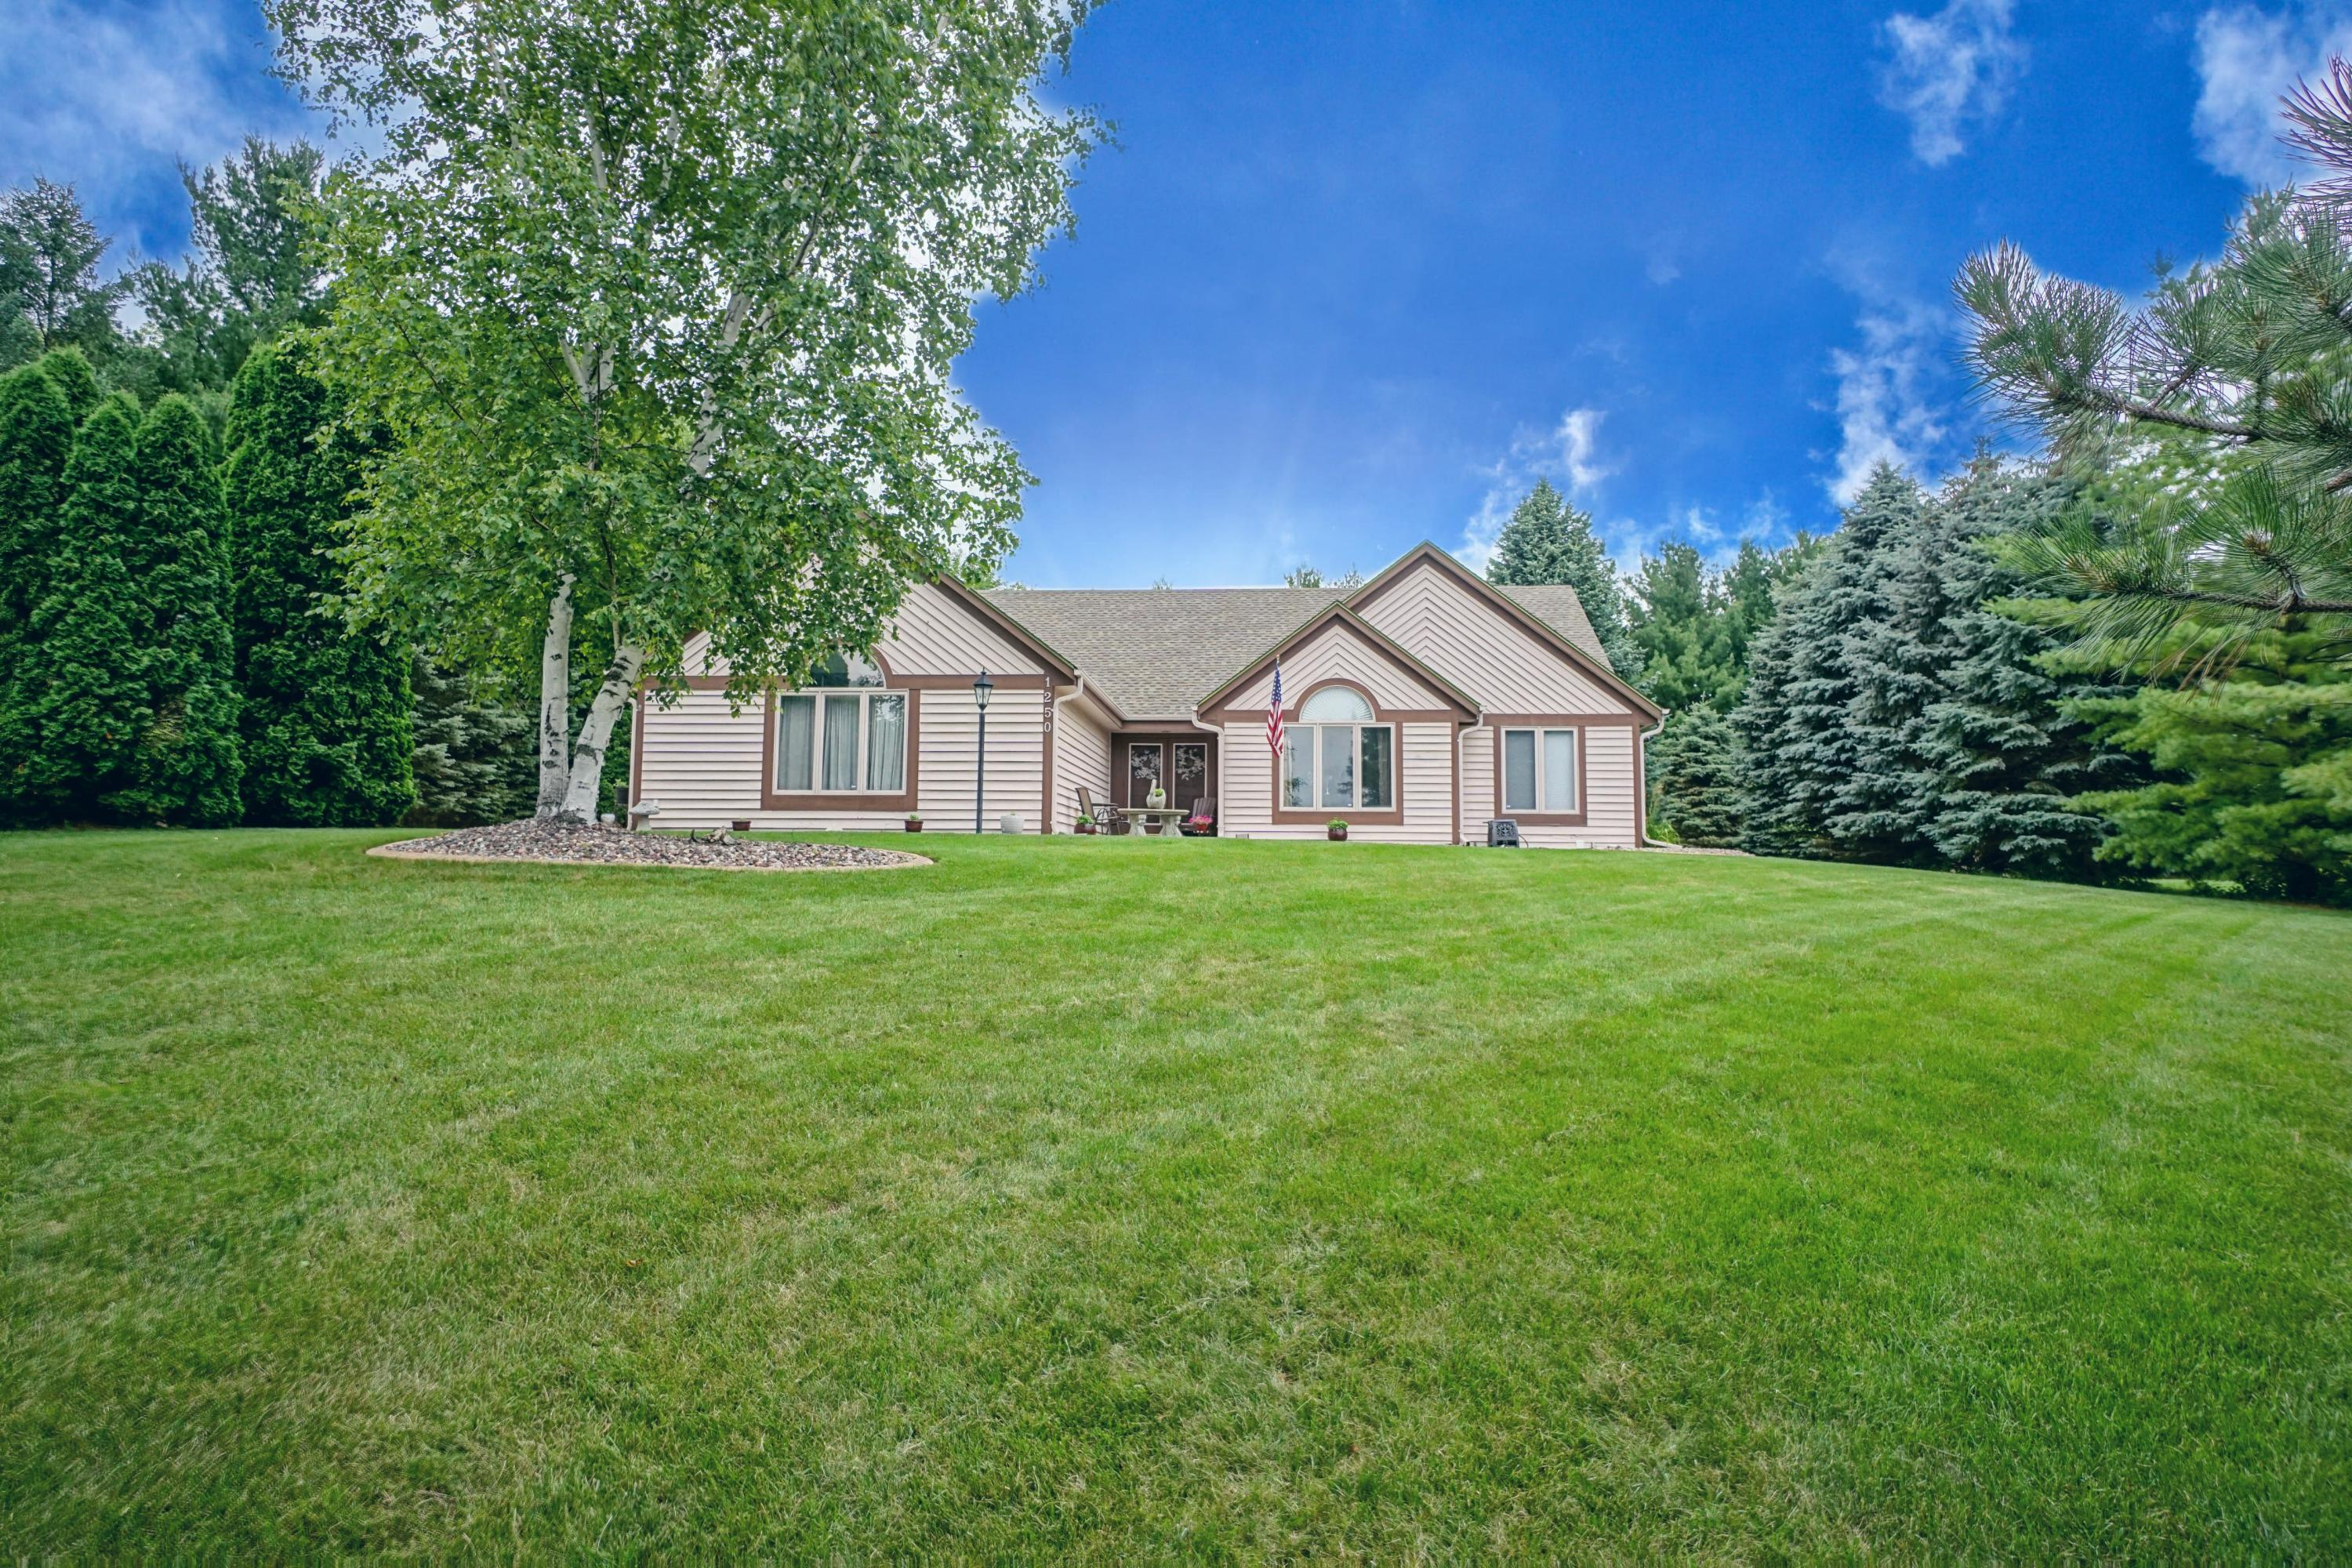 1250 Shelly Ln, Hartland, Wisconsin 53029, 4 Bedrooms Bedrooms, 9 Rooms Rooms,3 BathroomsBathrooms,Single-Family,For Sale,Shelly Ln,1751727